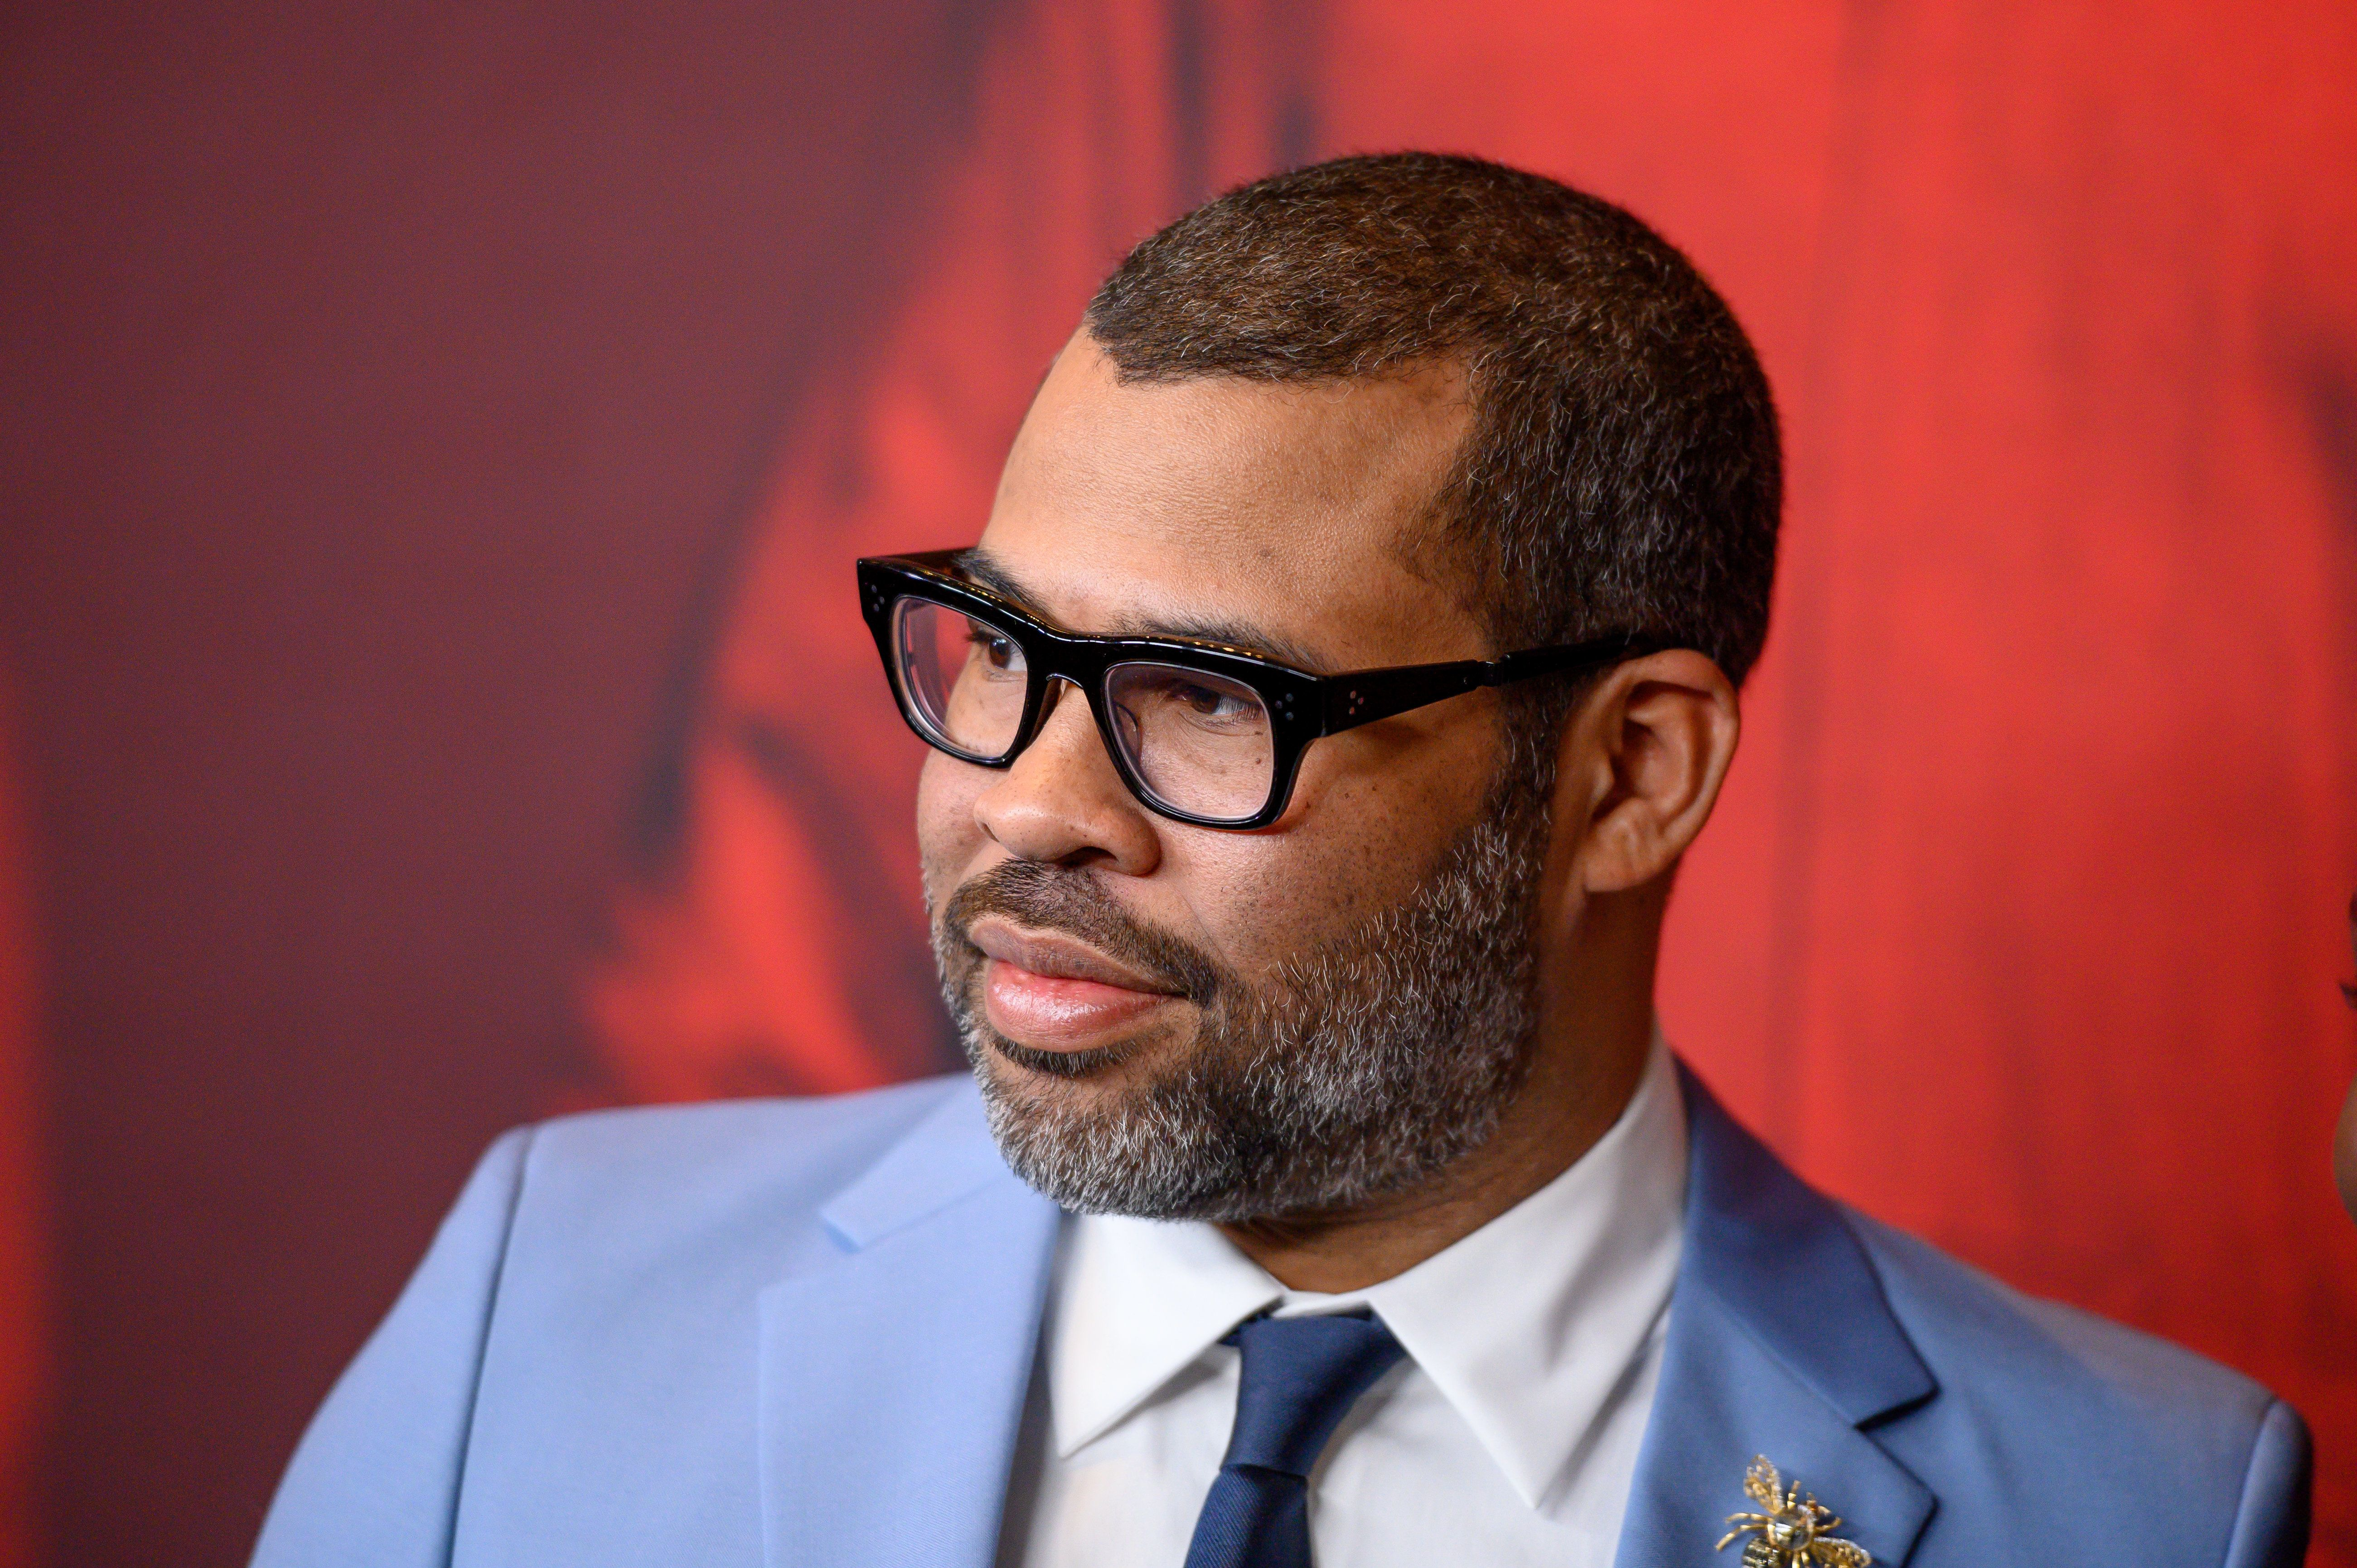 Jordan Peele Taps Into Our Deepest Fears With